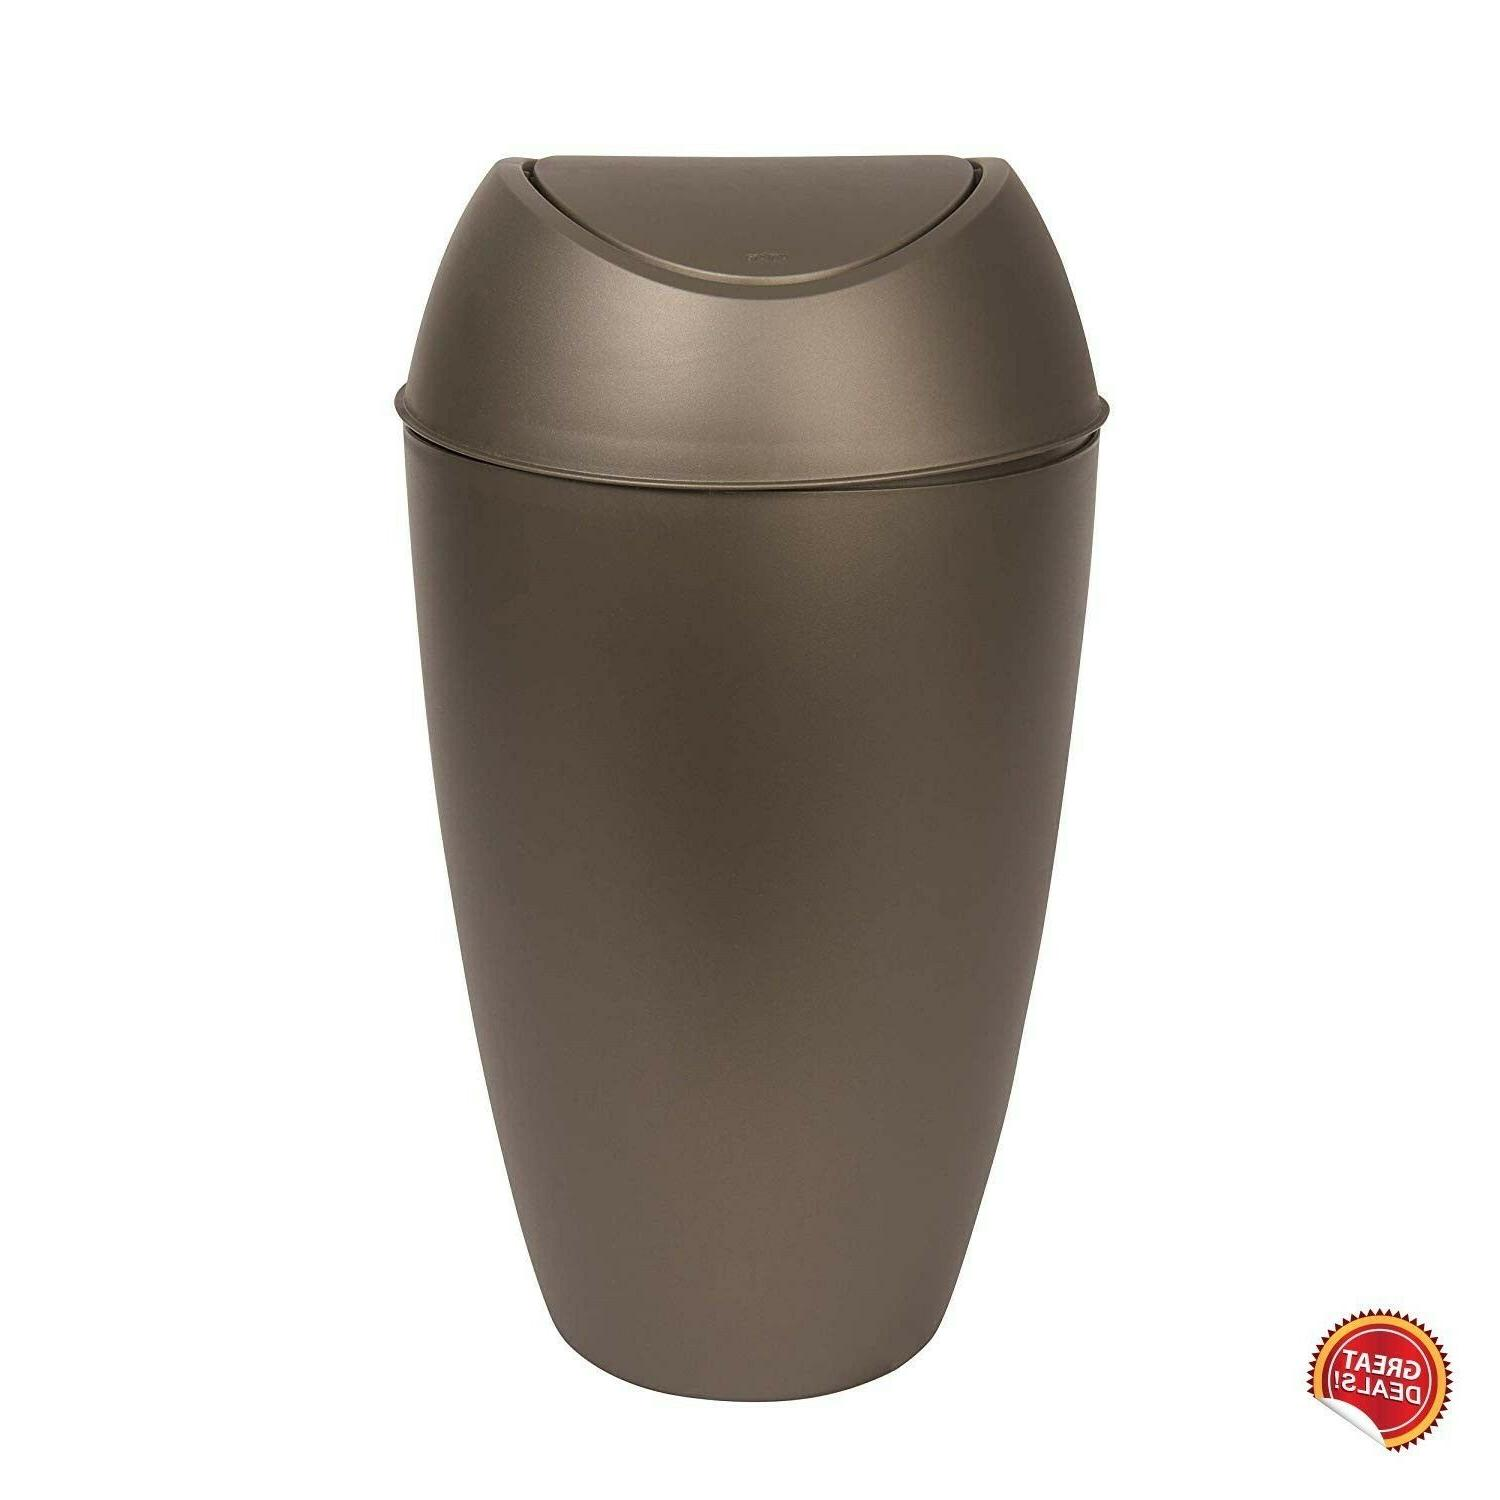 Small Trash Can With Lid Bedroom Bin Kitchen Waste Basket Swing Top